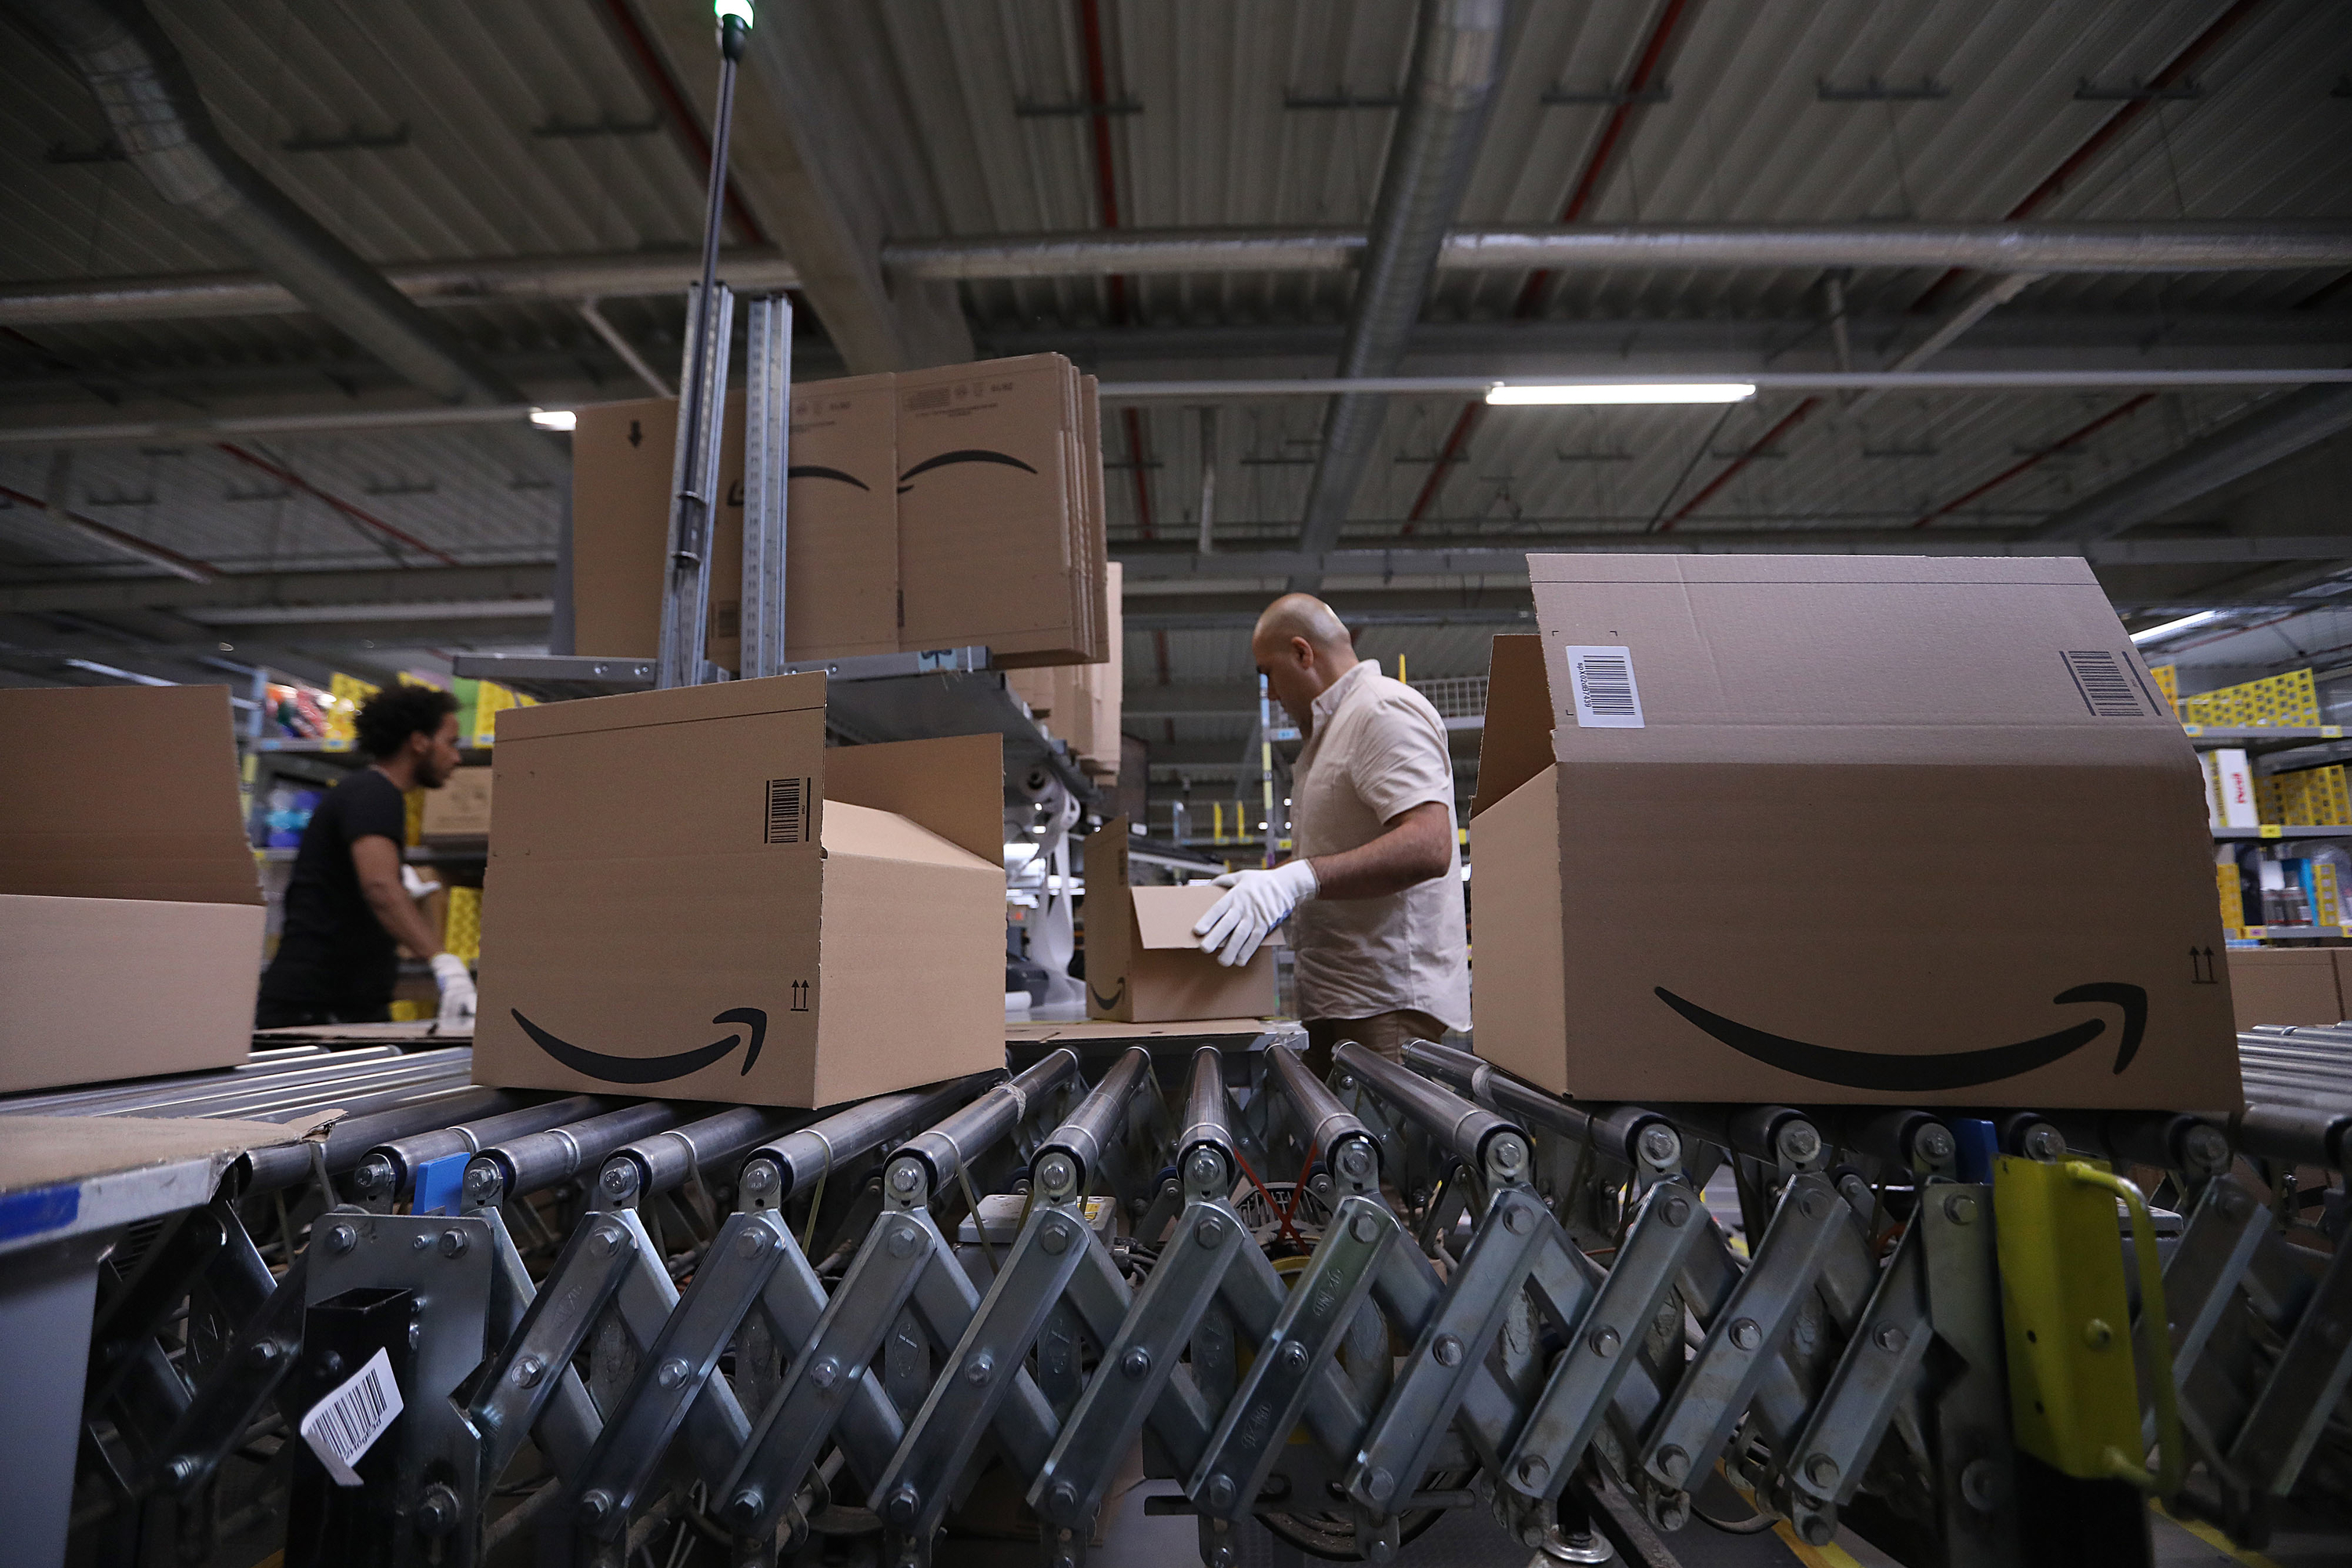 Amazon eyeing large distribution center in Queens, New York